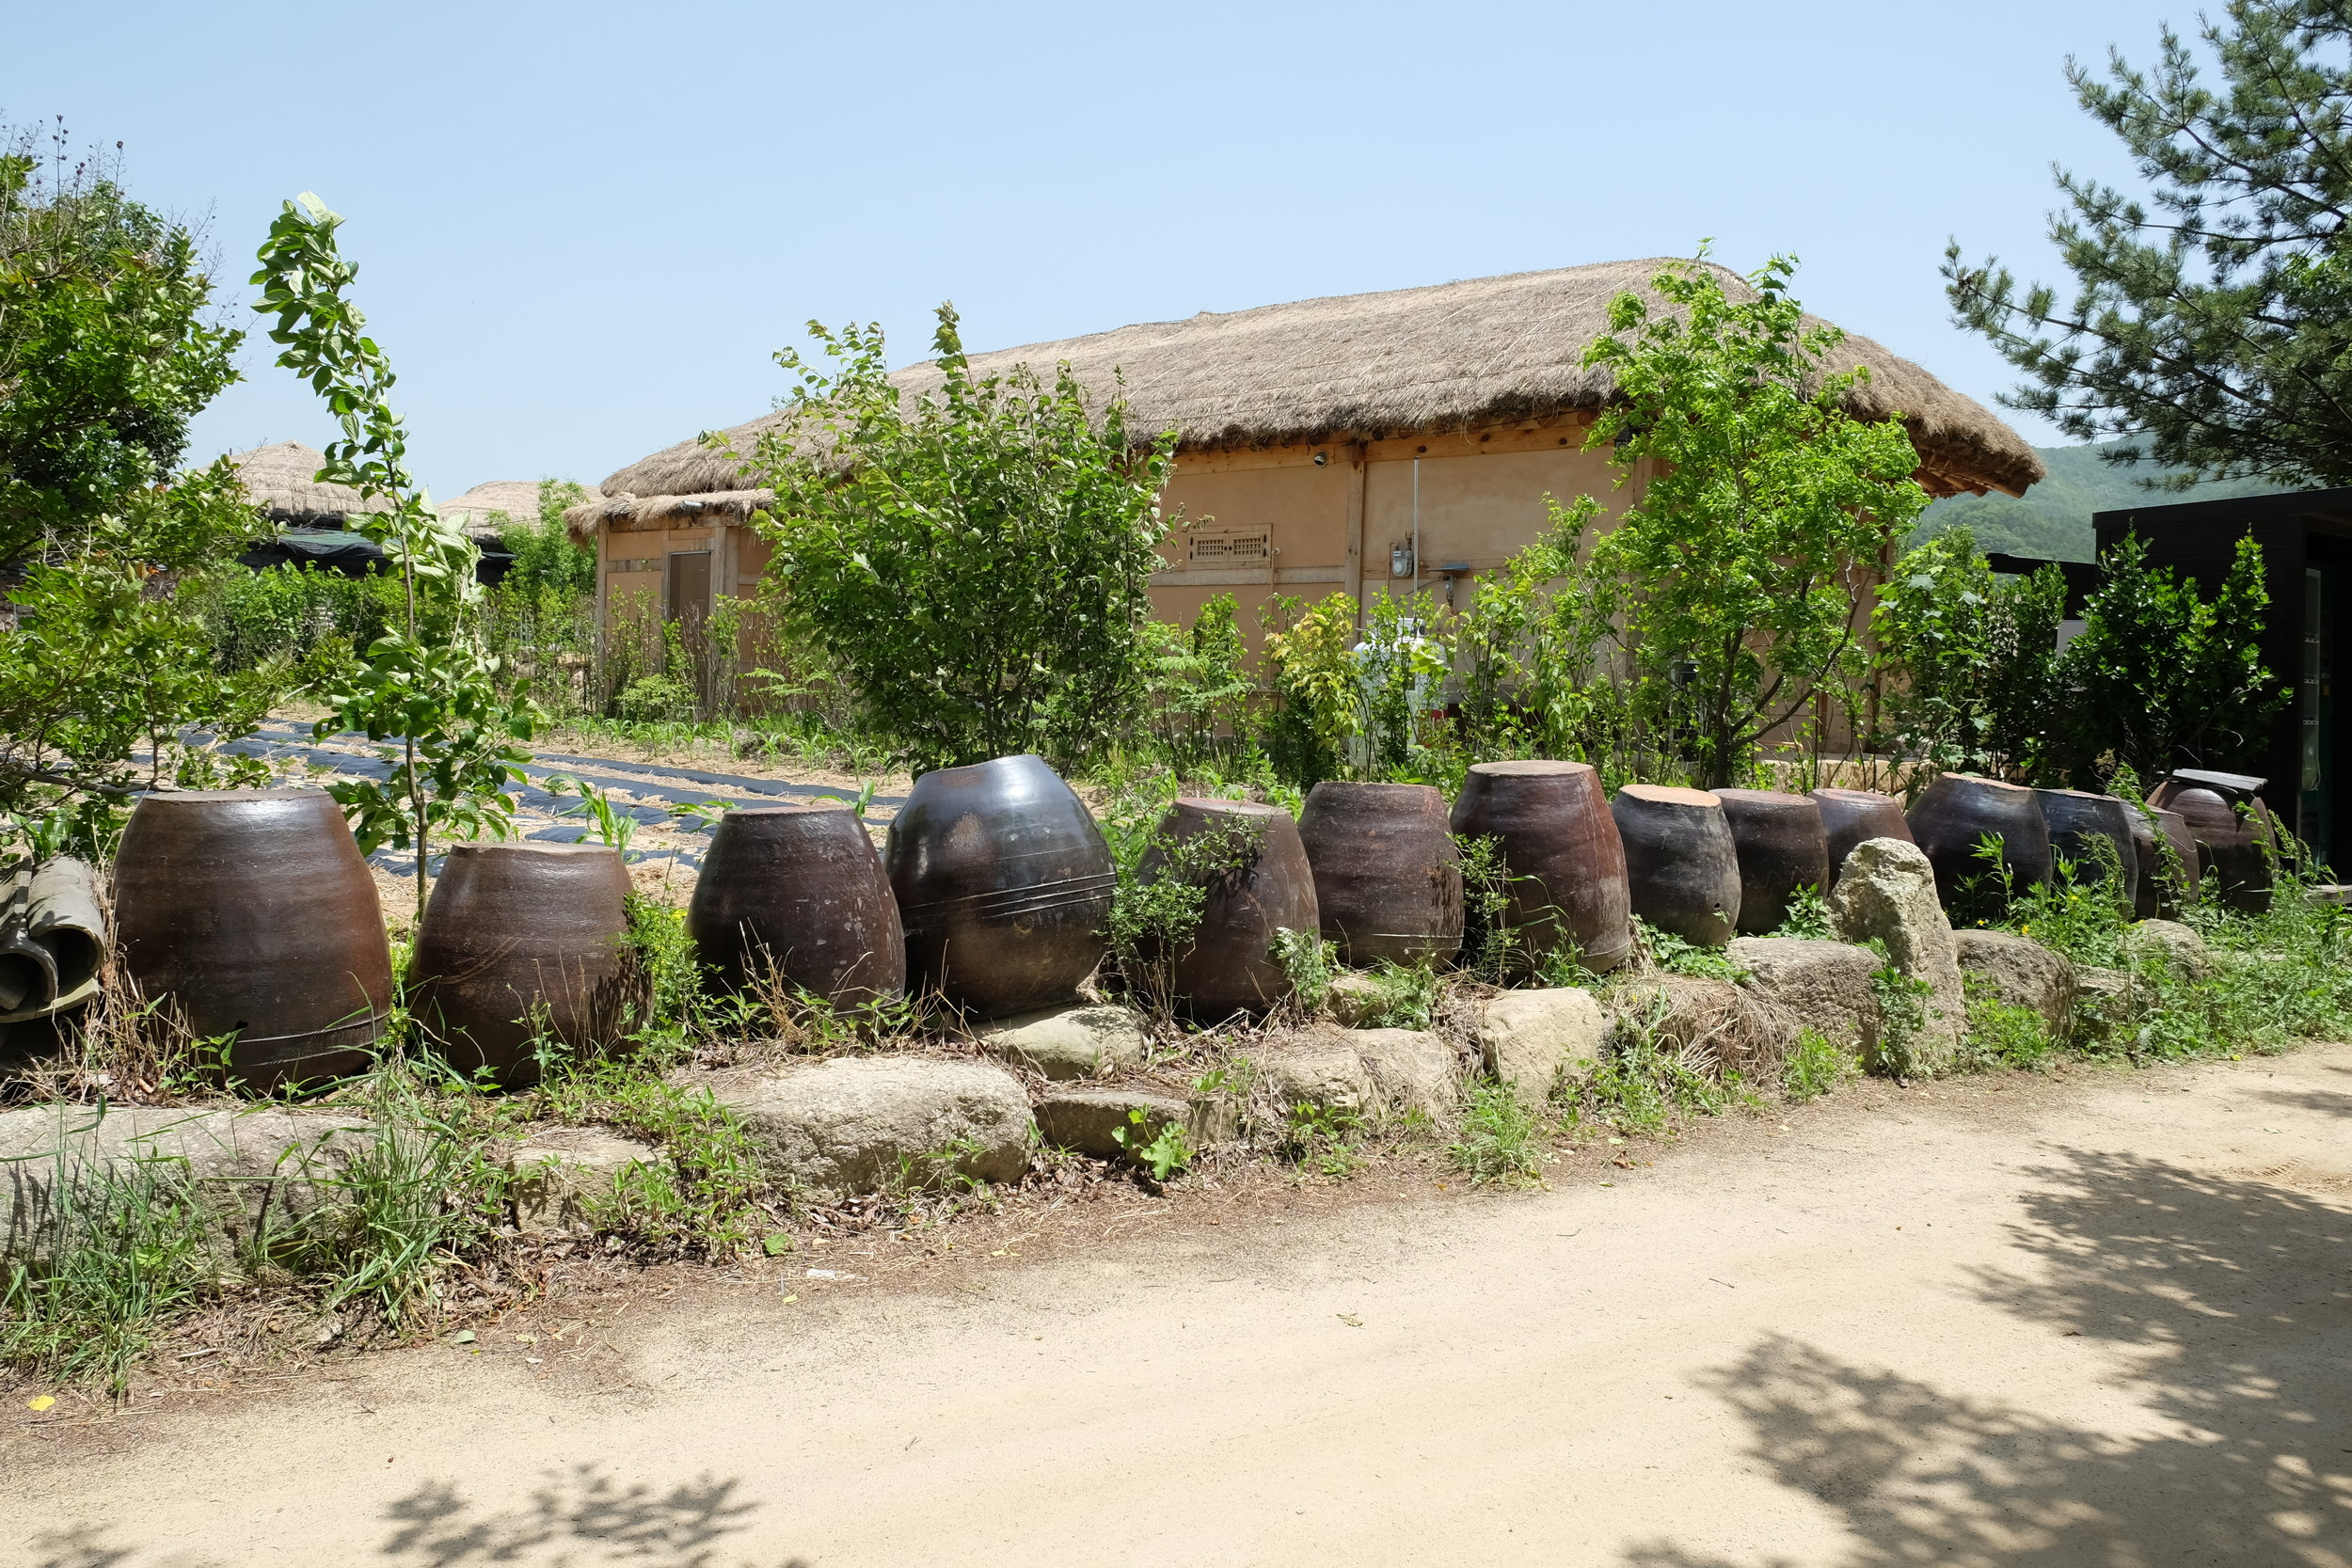 Earthen pots filled with pickled goodness. Jess remembers her grandmother using them to store kimchi and soybean paste.